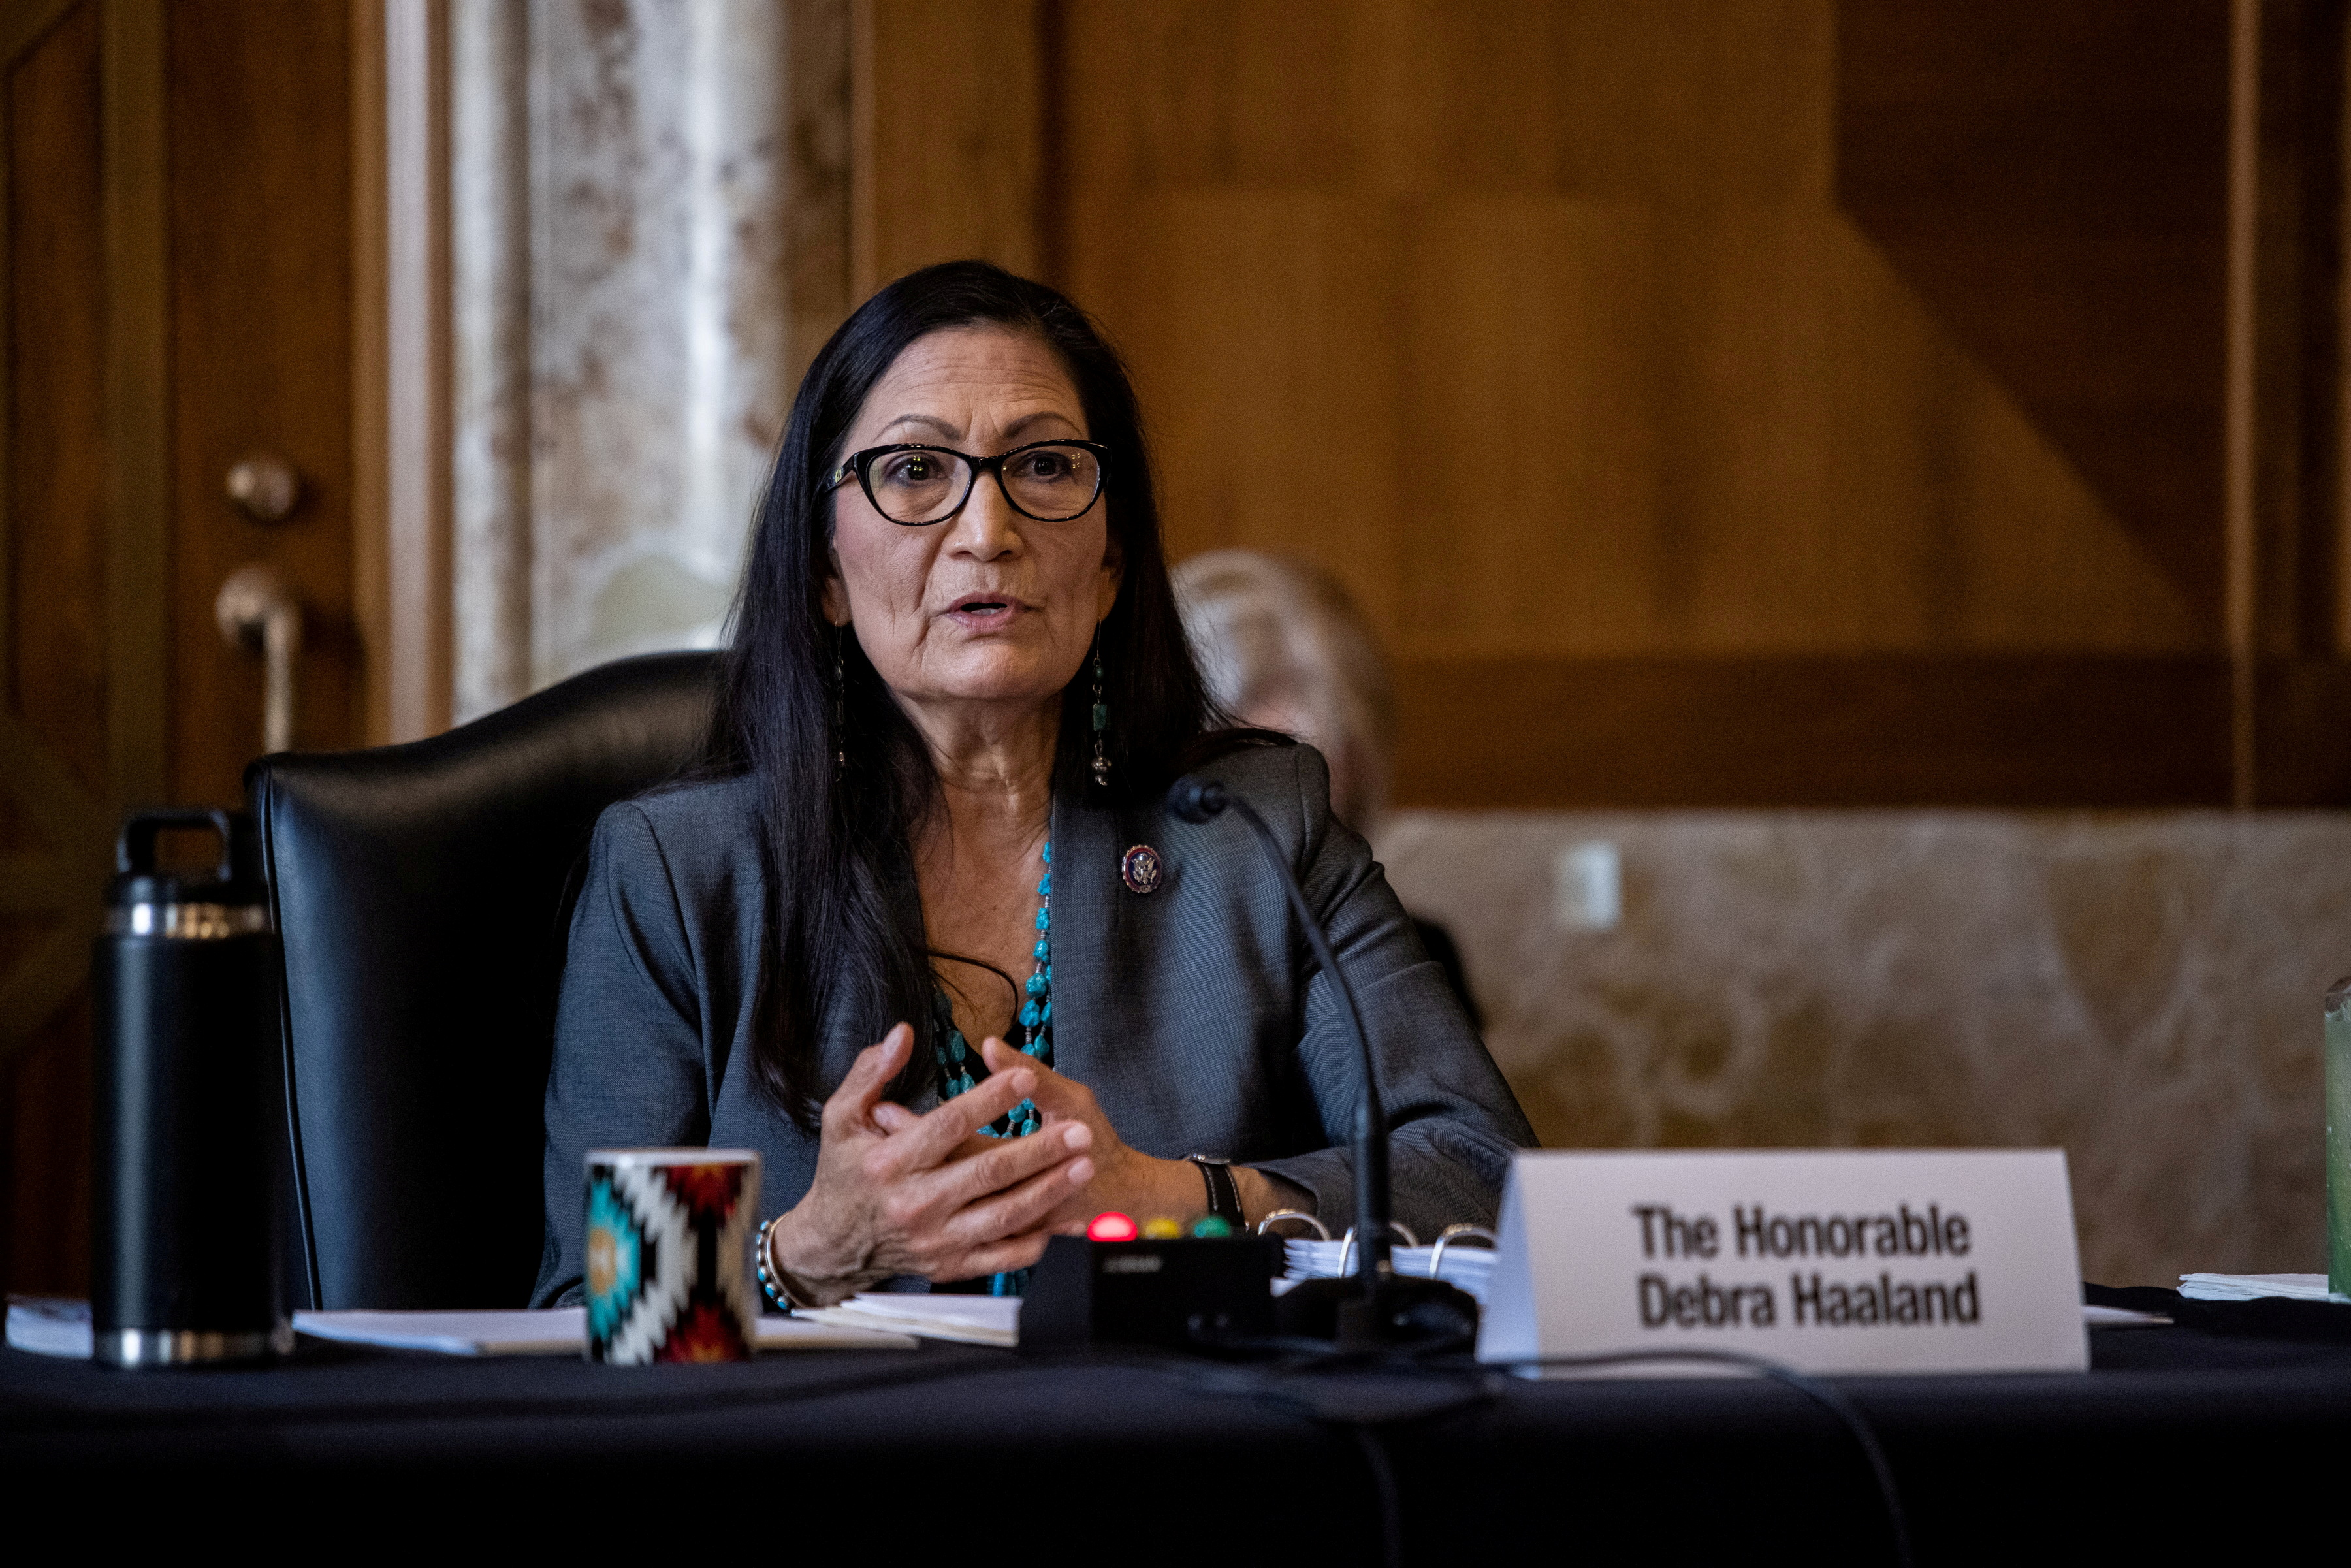 Rep. Deb Haaland, D-NM, speaks during a Senate Committee on Energy and Natural Resources hearing on her nomination to be Interior Secretary on Capitol Hill in Washington, DC, U.S. February 23, 2021.    Graeme Jennings/Pool via REUTERS/File Photo